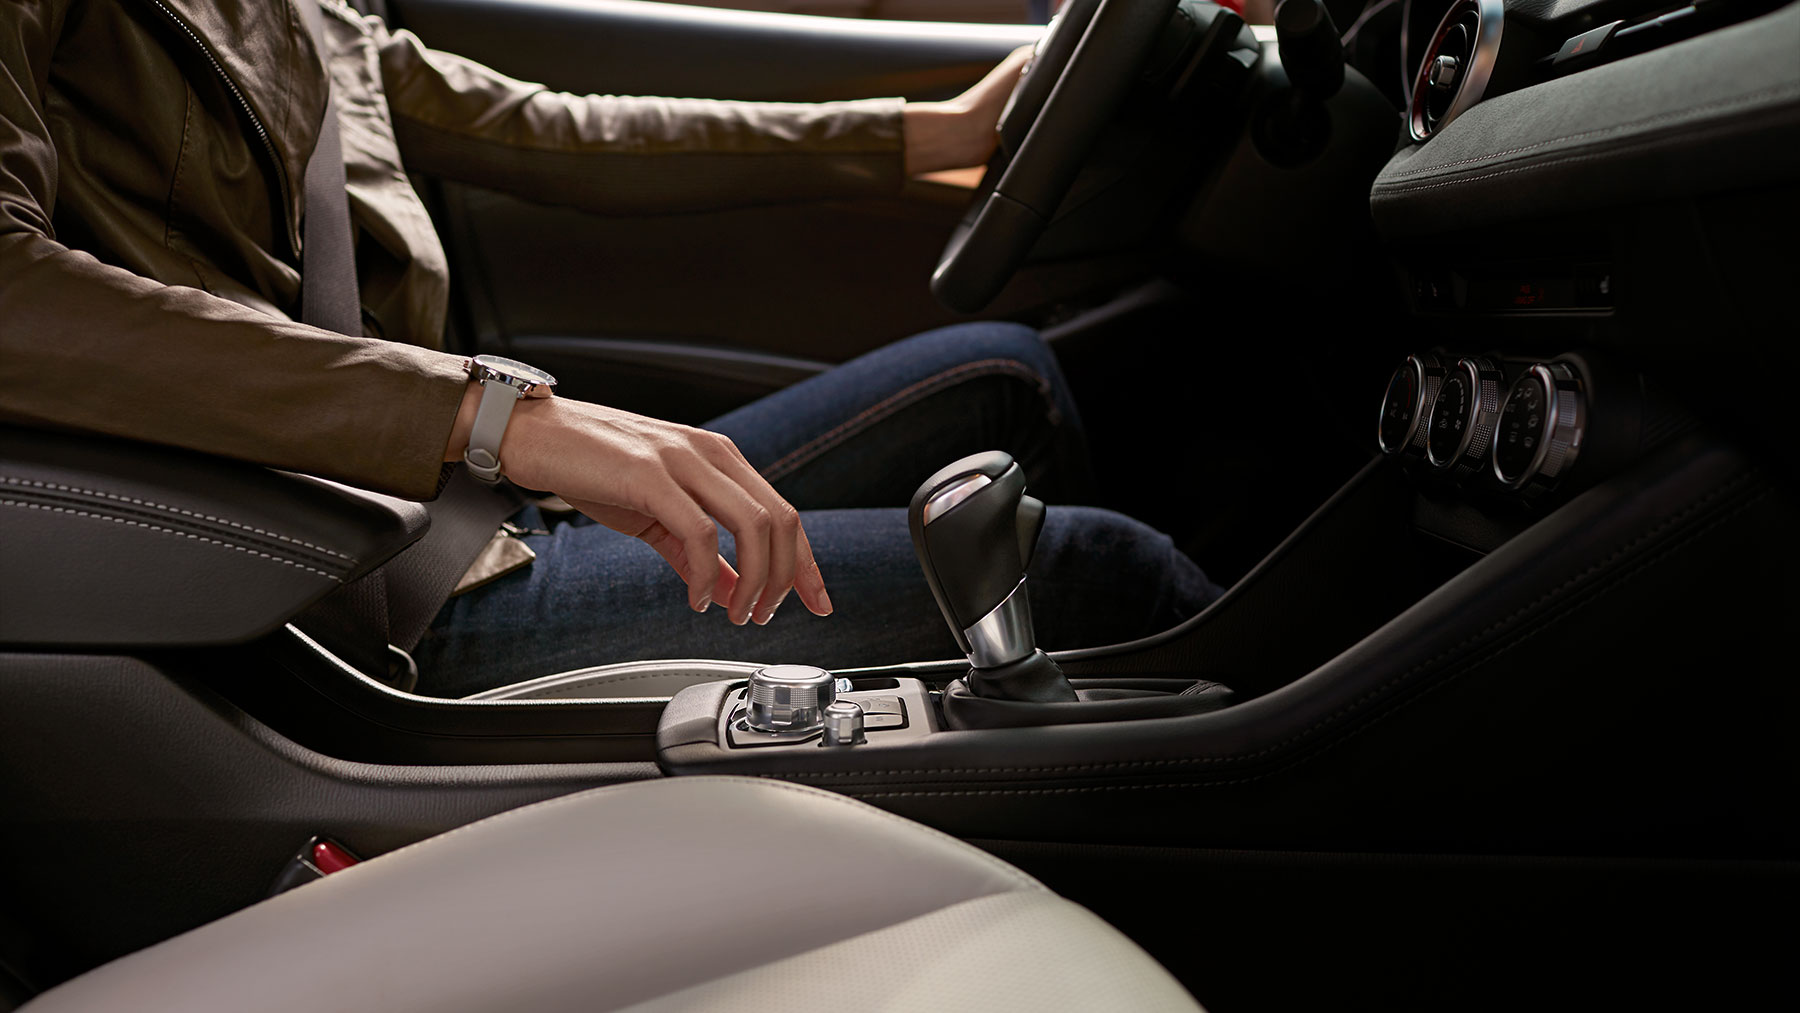 Luxurious Amenities in the Mazda CX-3